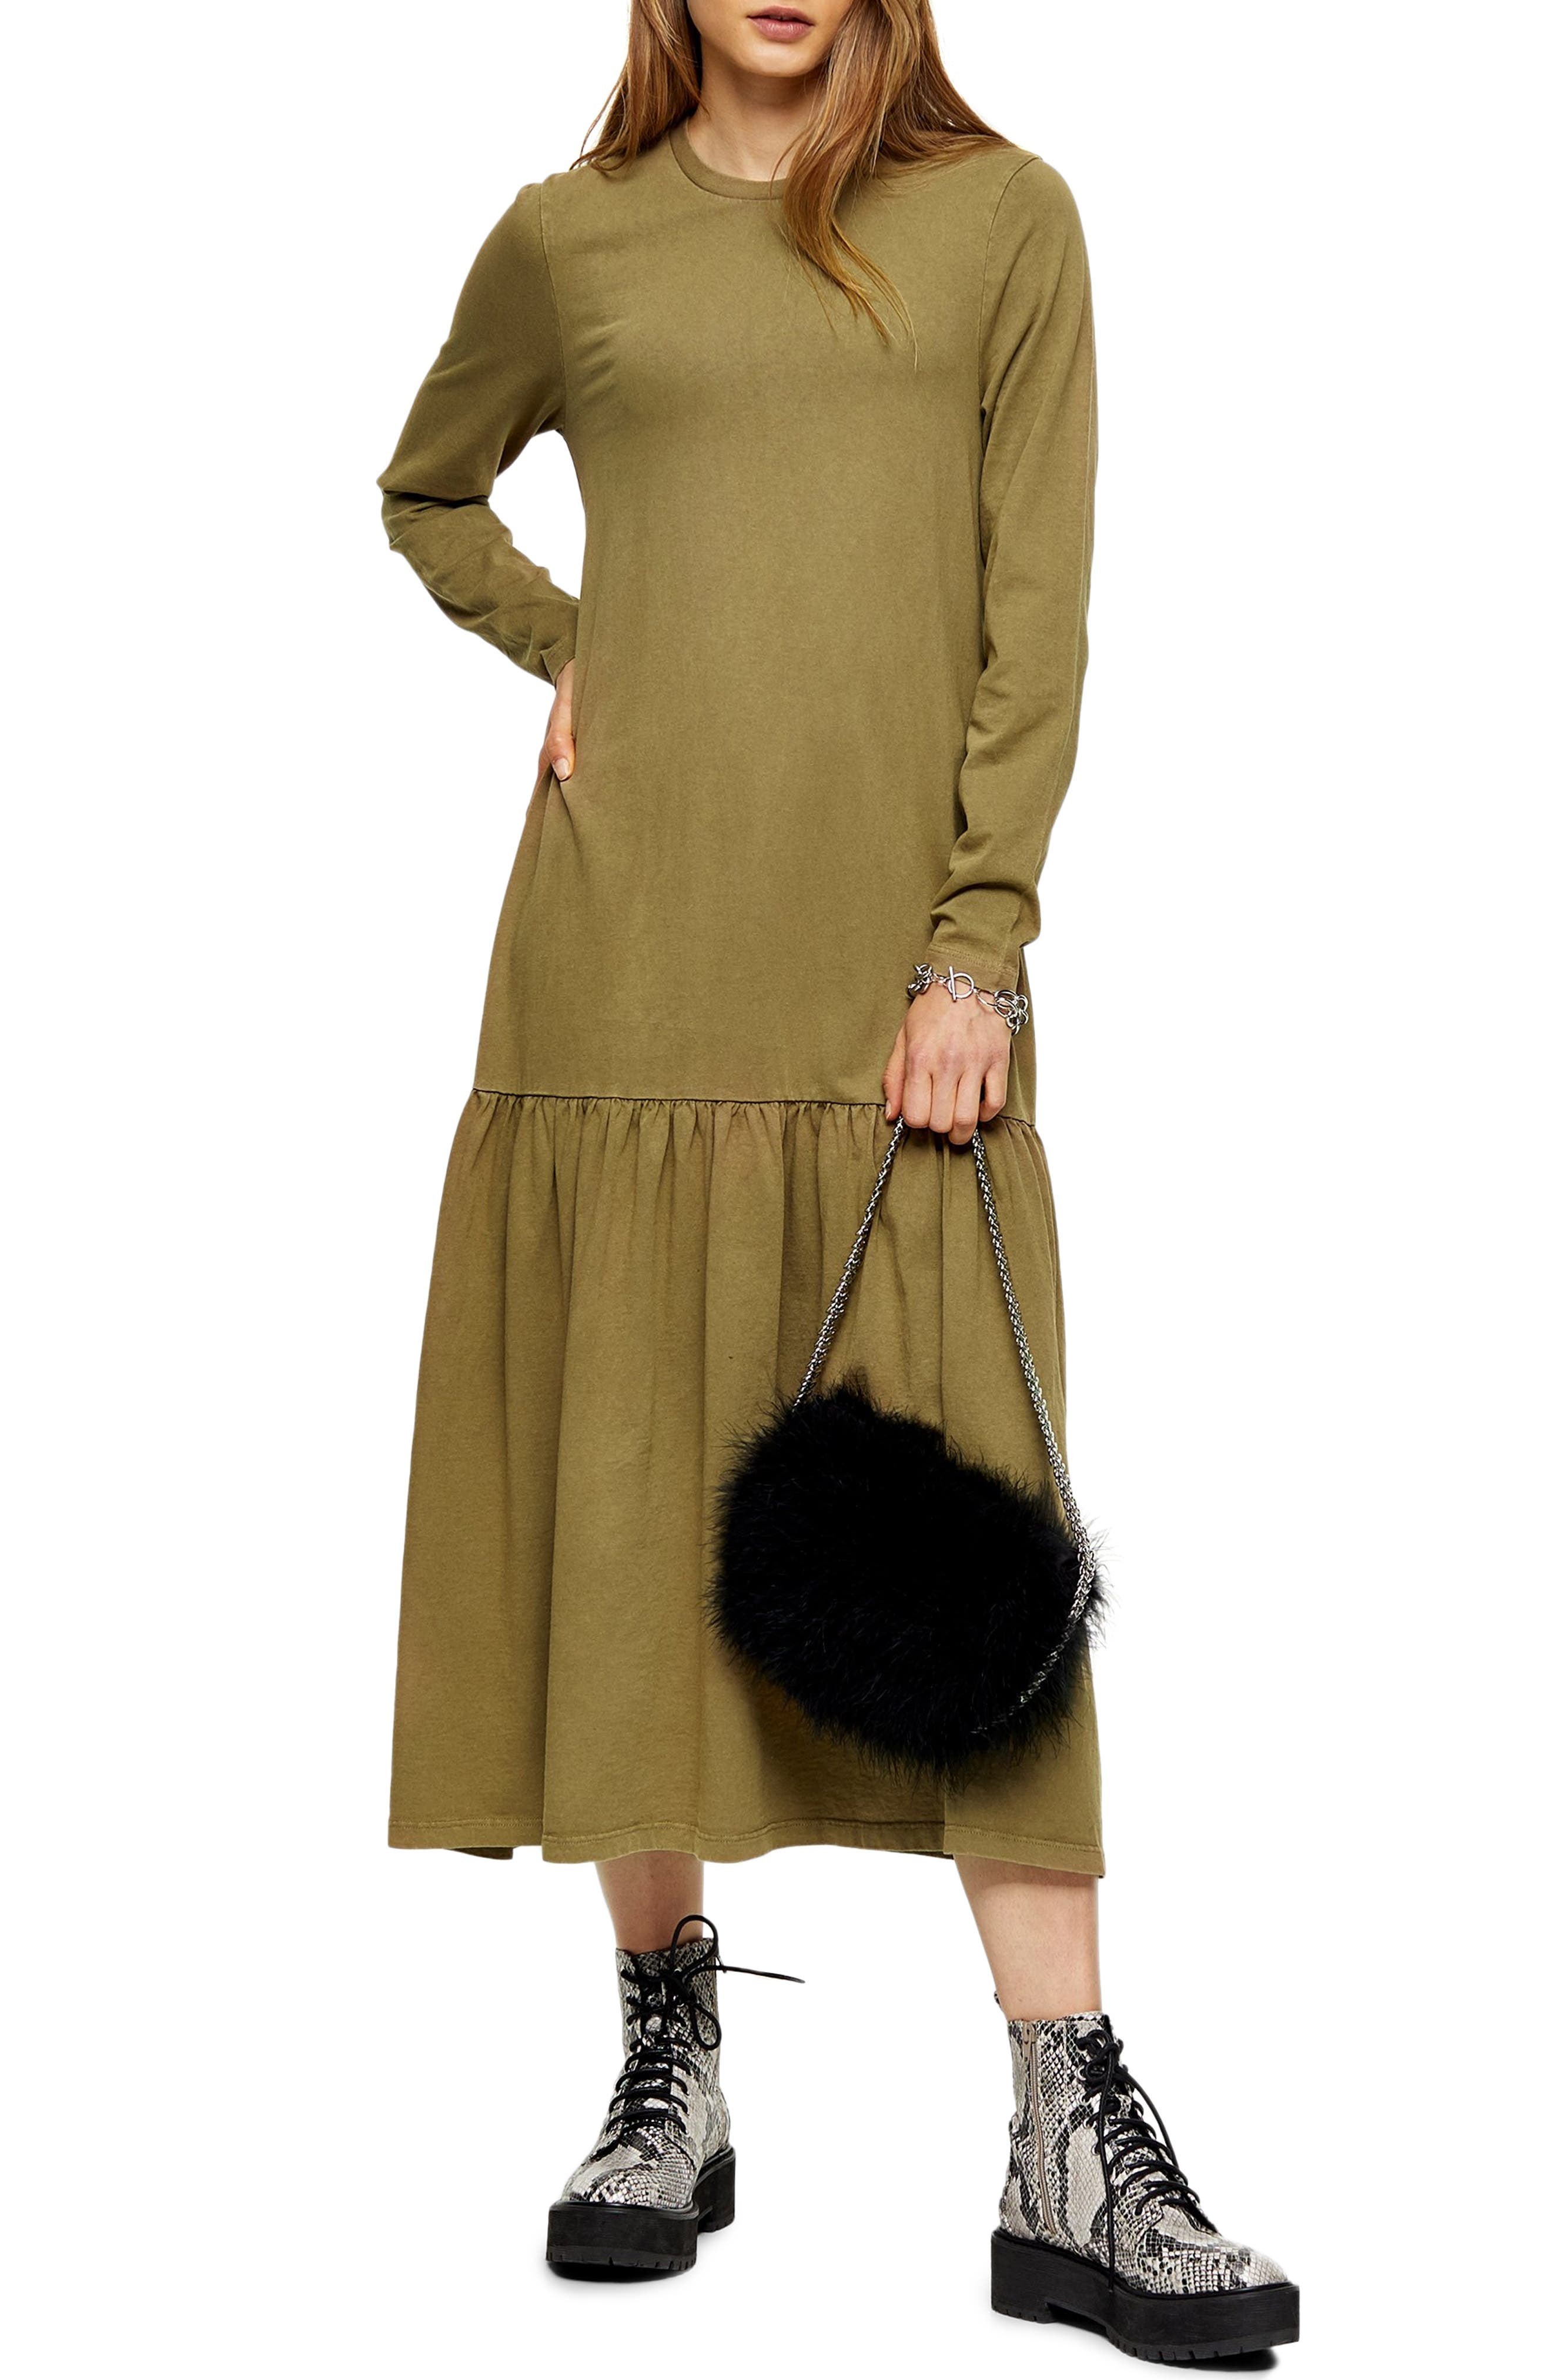 1920s Day Dresses, Tea Dresses, Mature Dresses with Sleeves Womens Topshop Long Sleeve Acid Wash Drop Waist Midi Dress Size 4 US fits like 0-2 - Green $55.00 AT vintagedancer.com